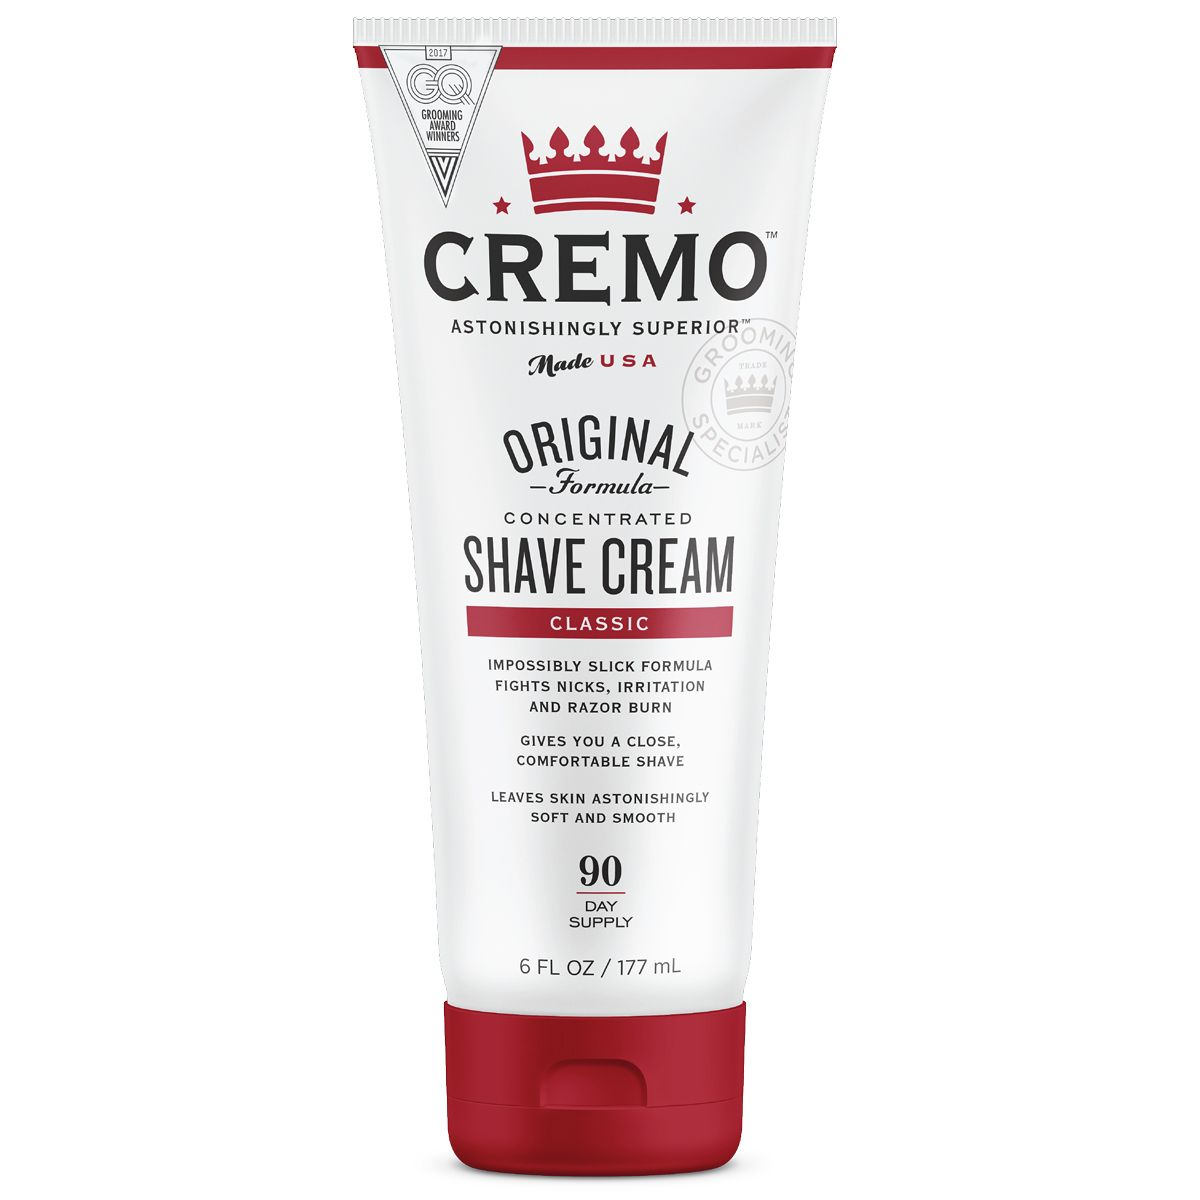 Cremo is one of the best shave cream for women